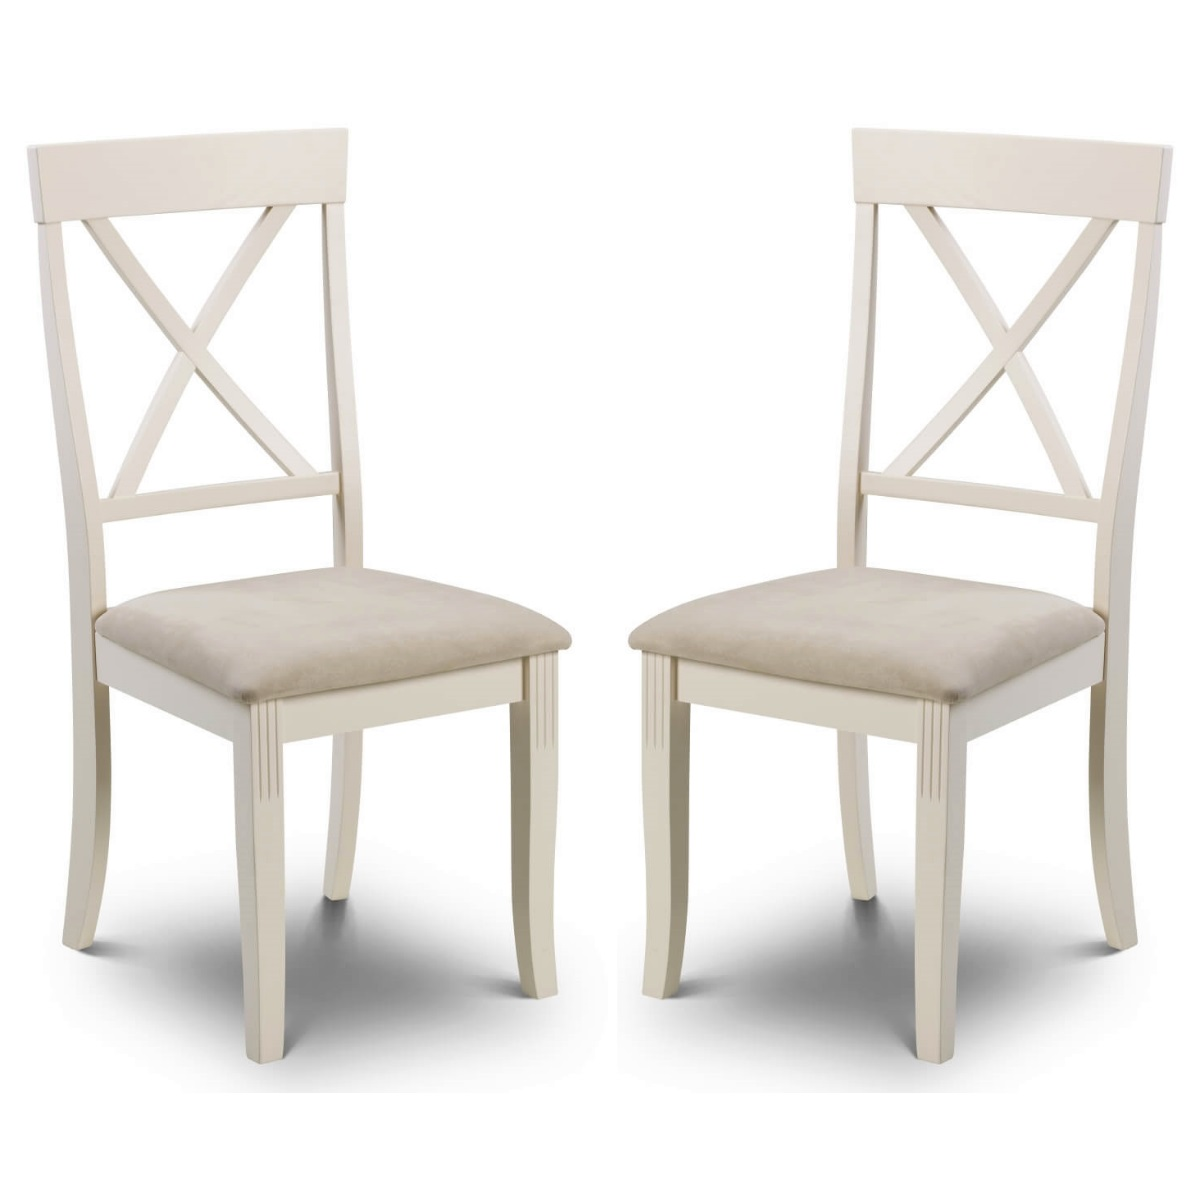 Pair Of Julian Bowen Davenport White Dining Chairs Dav002